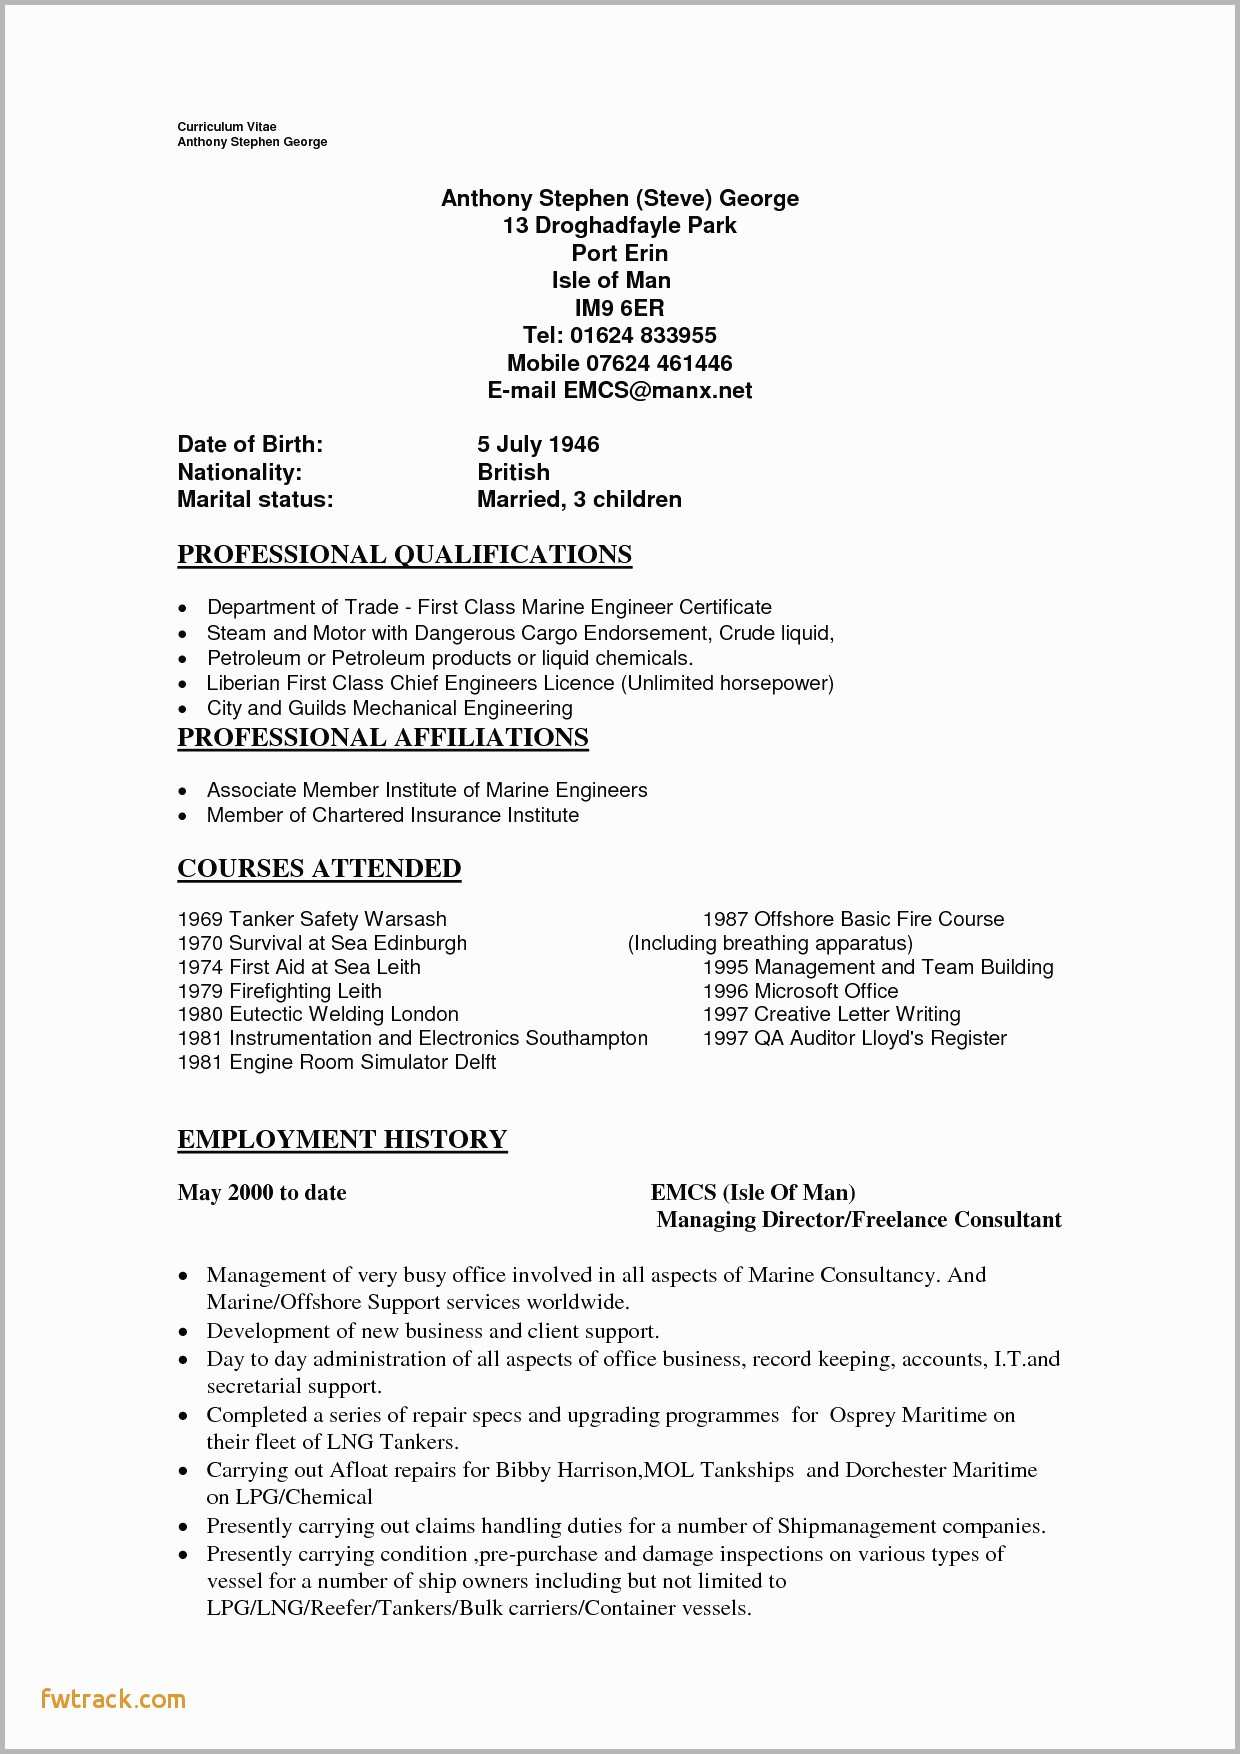 mechanical engineer resume template example-Mechanical Engineer Resume Template 14-e